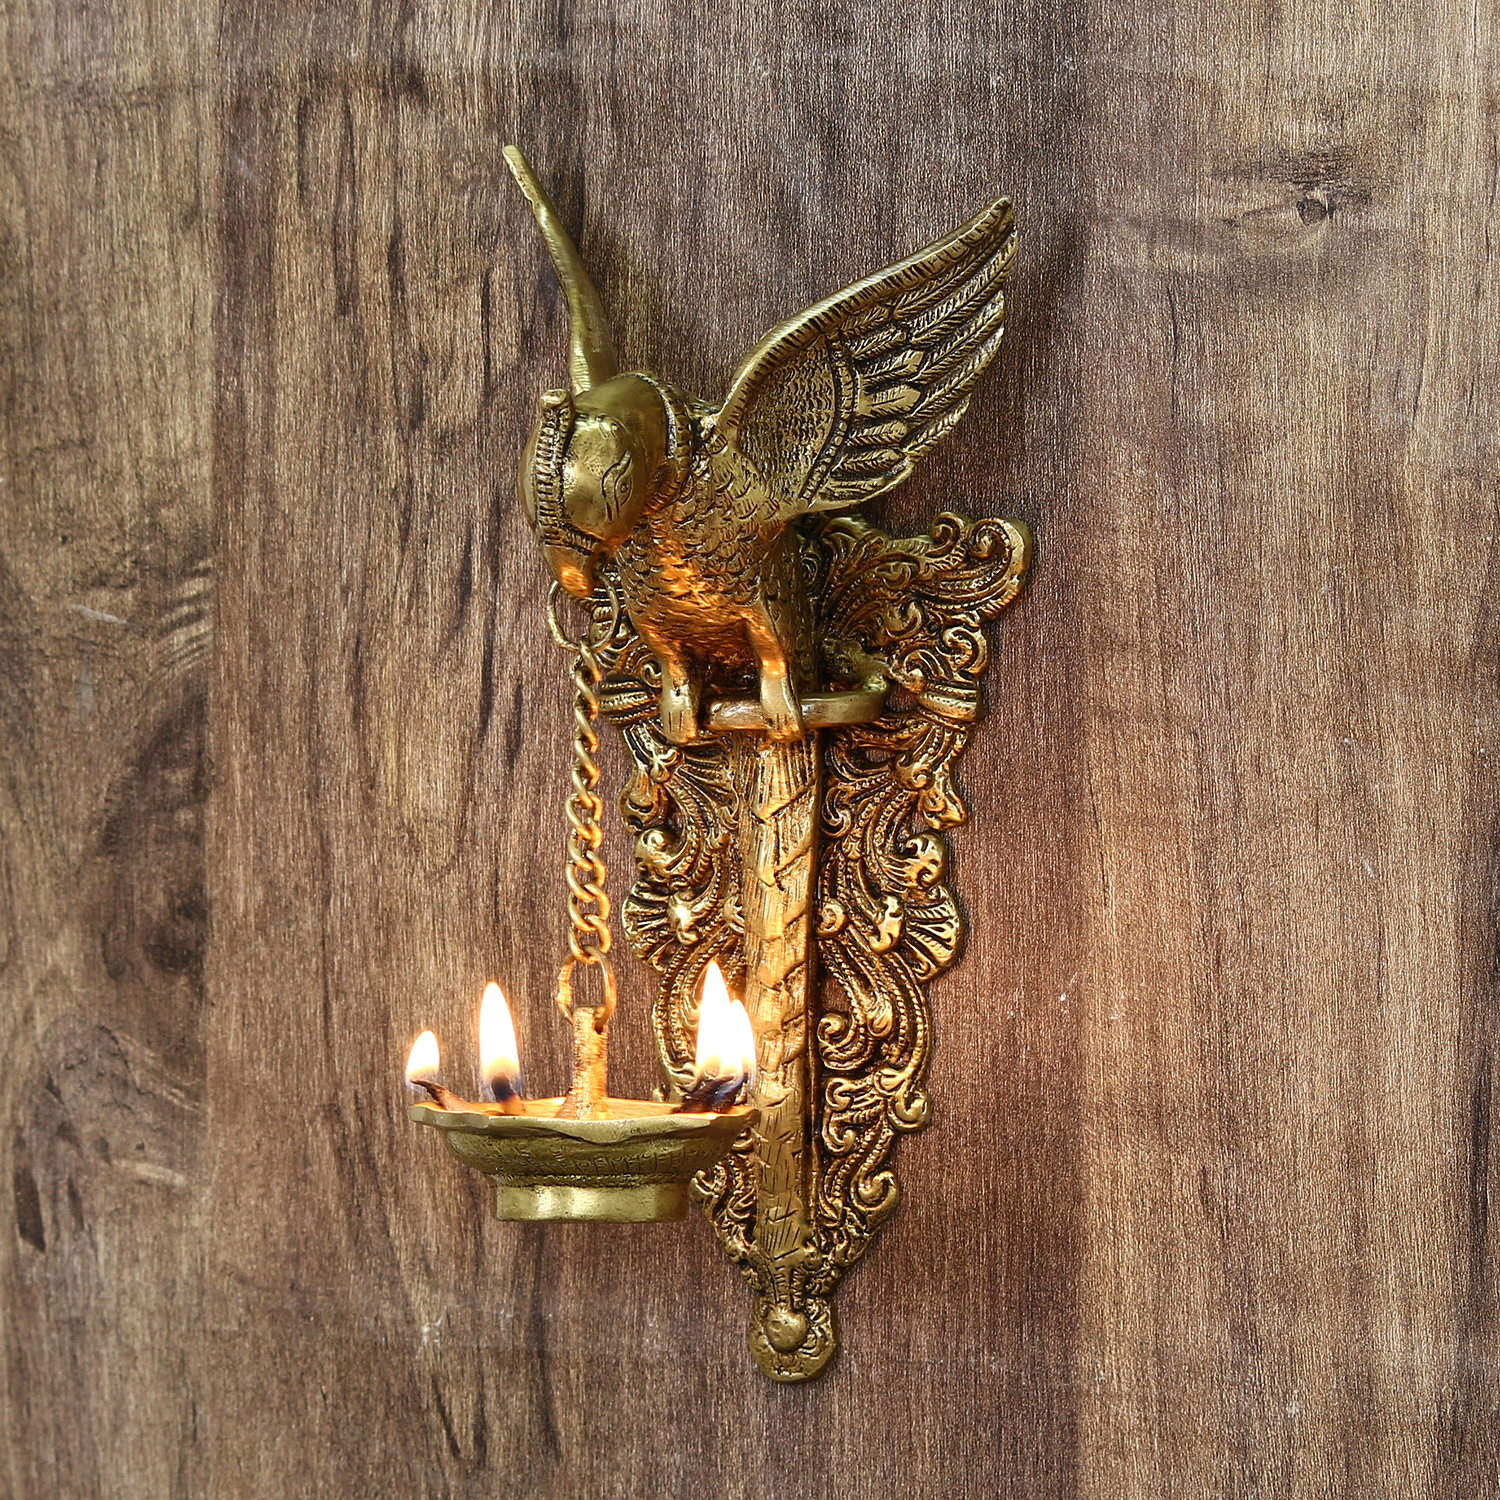 Decorative Handcrafted Brass Bird Wall Hanging with Diya for 5 wicks Indian Home Decor